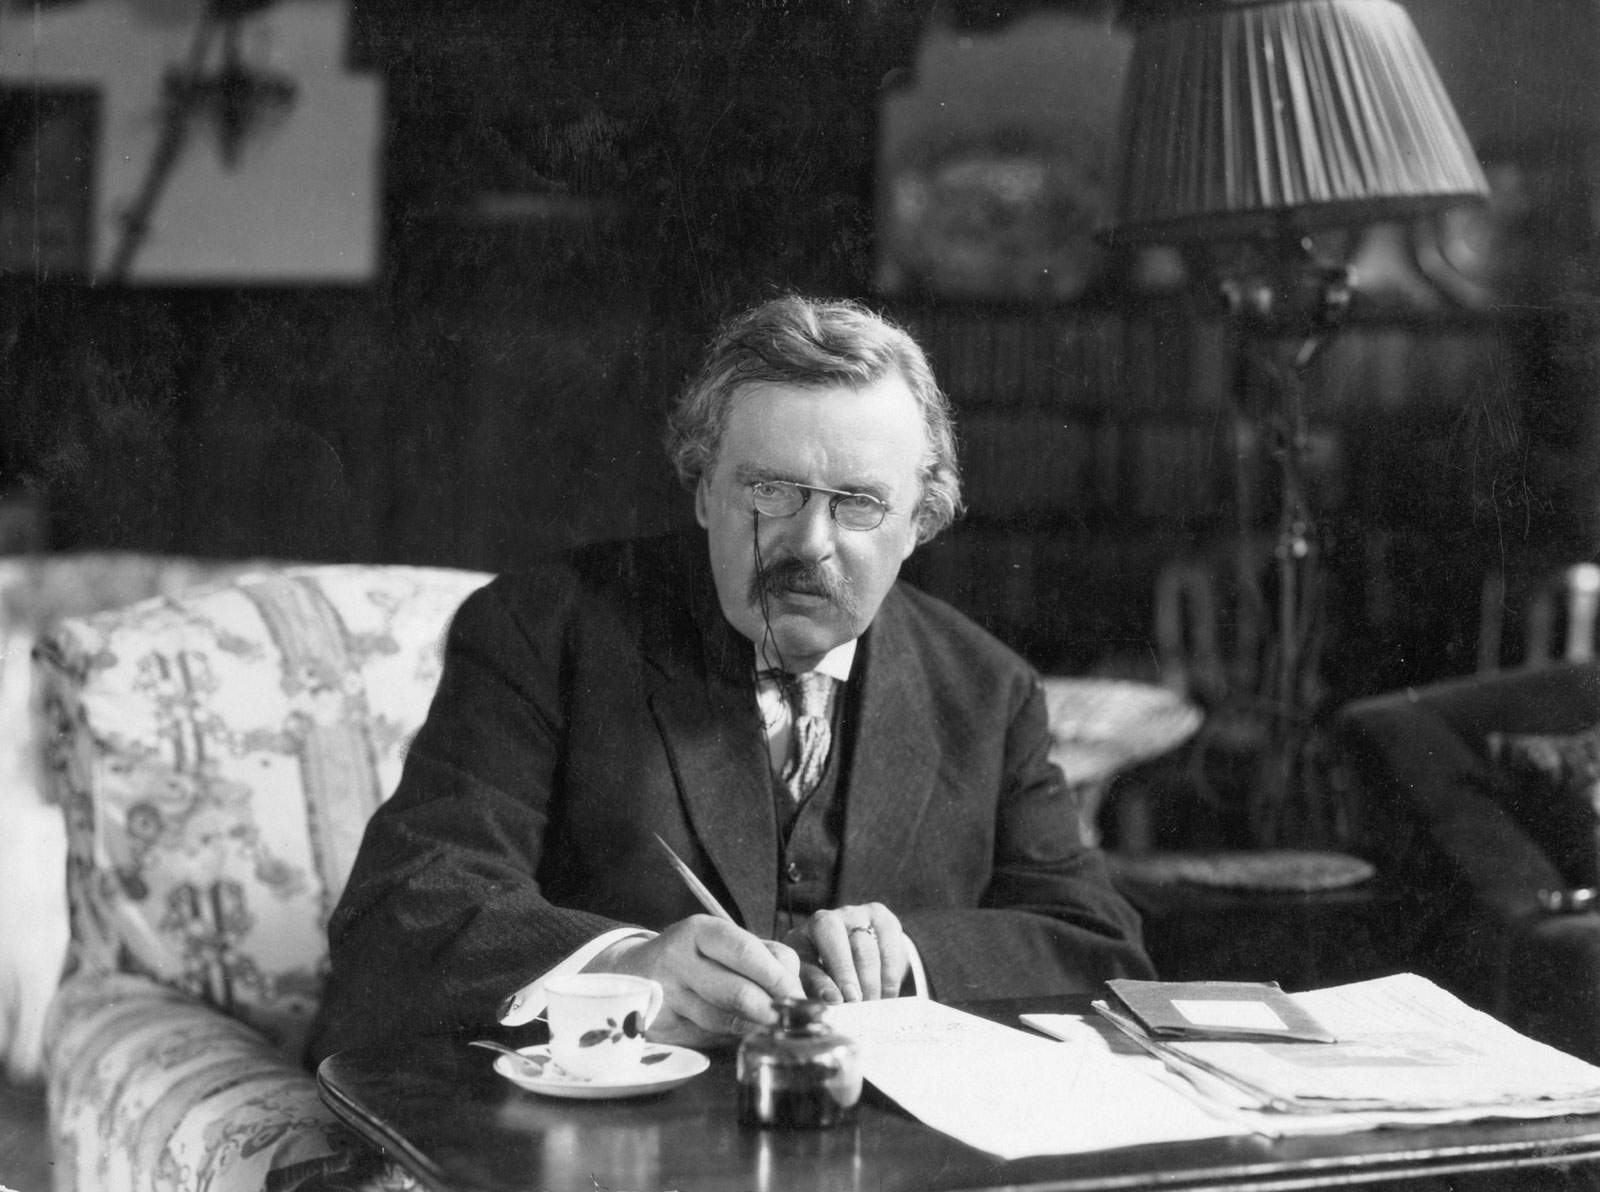 http://upload.wikimedia.org/wikipedia/commons/7/79/G._K._Chesterton_at_work.jpg